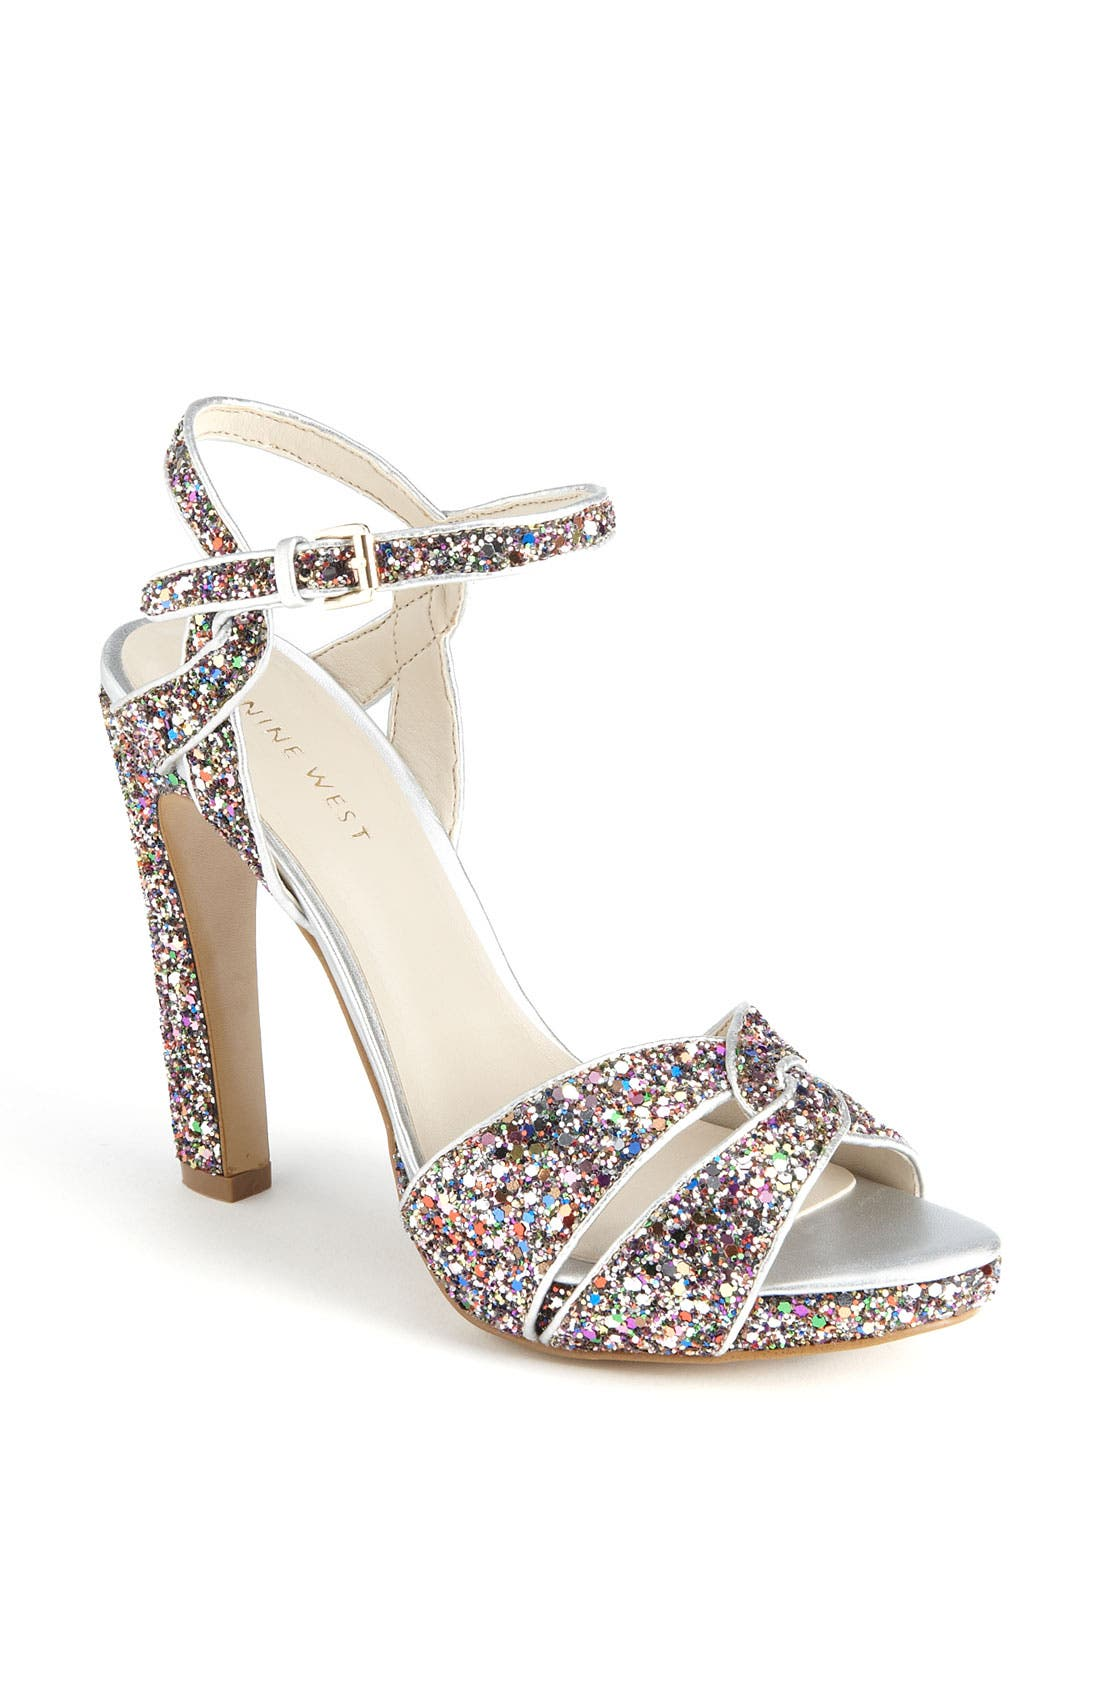 Main Image - Nine West 'Hotlist' Sandal